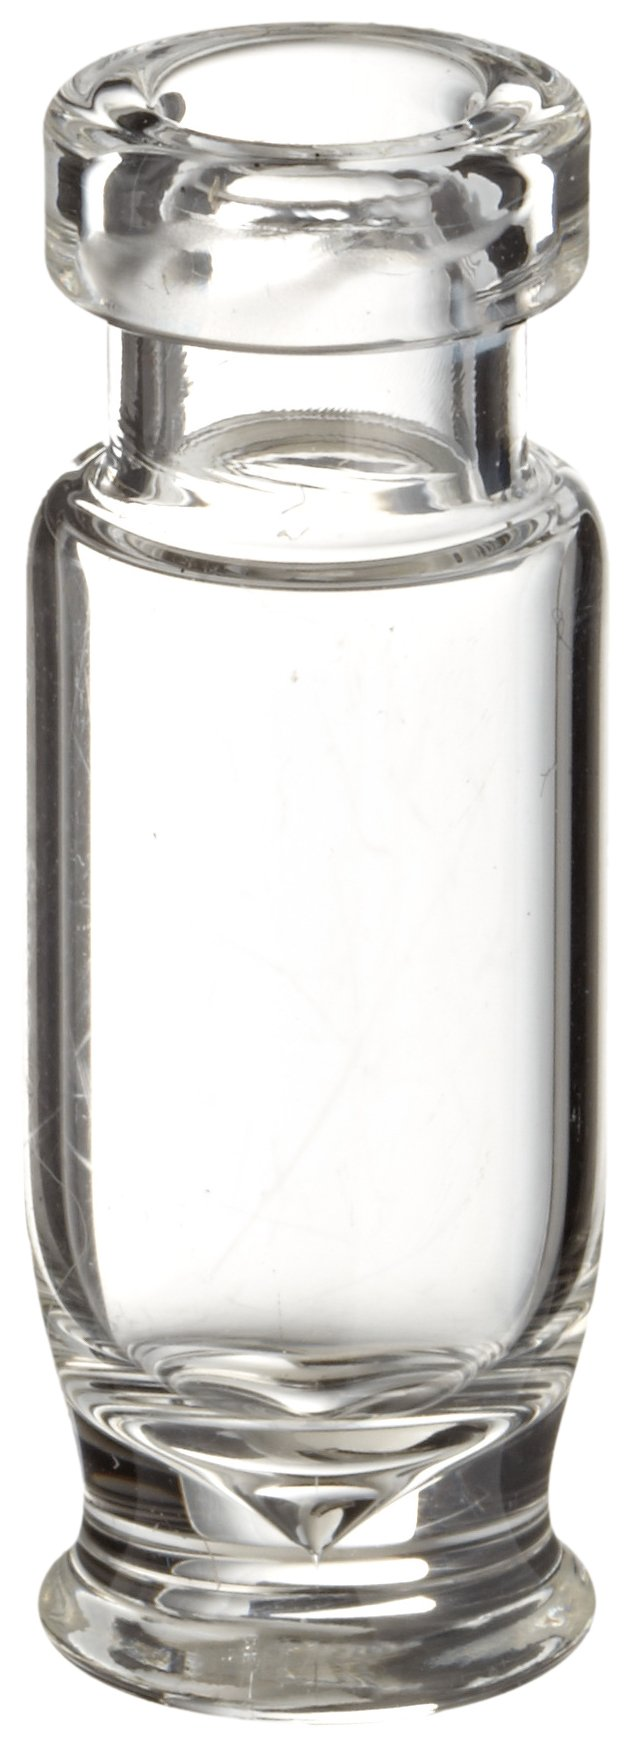 National Scientific Clear Silanized High Recovery Vial (Pack of 100)